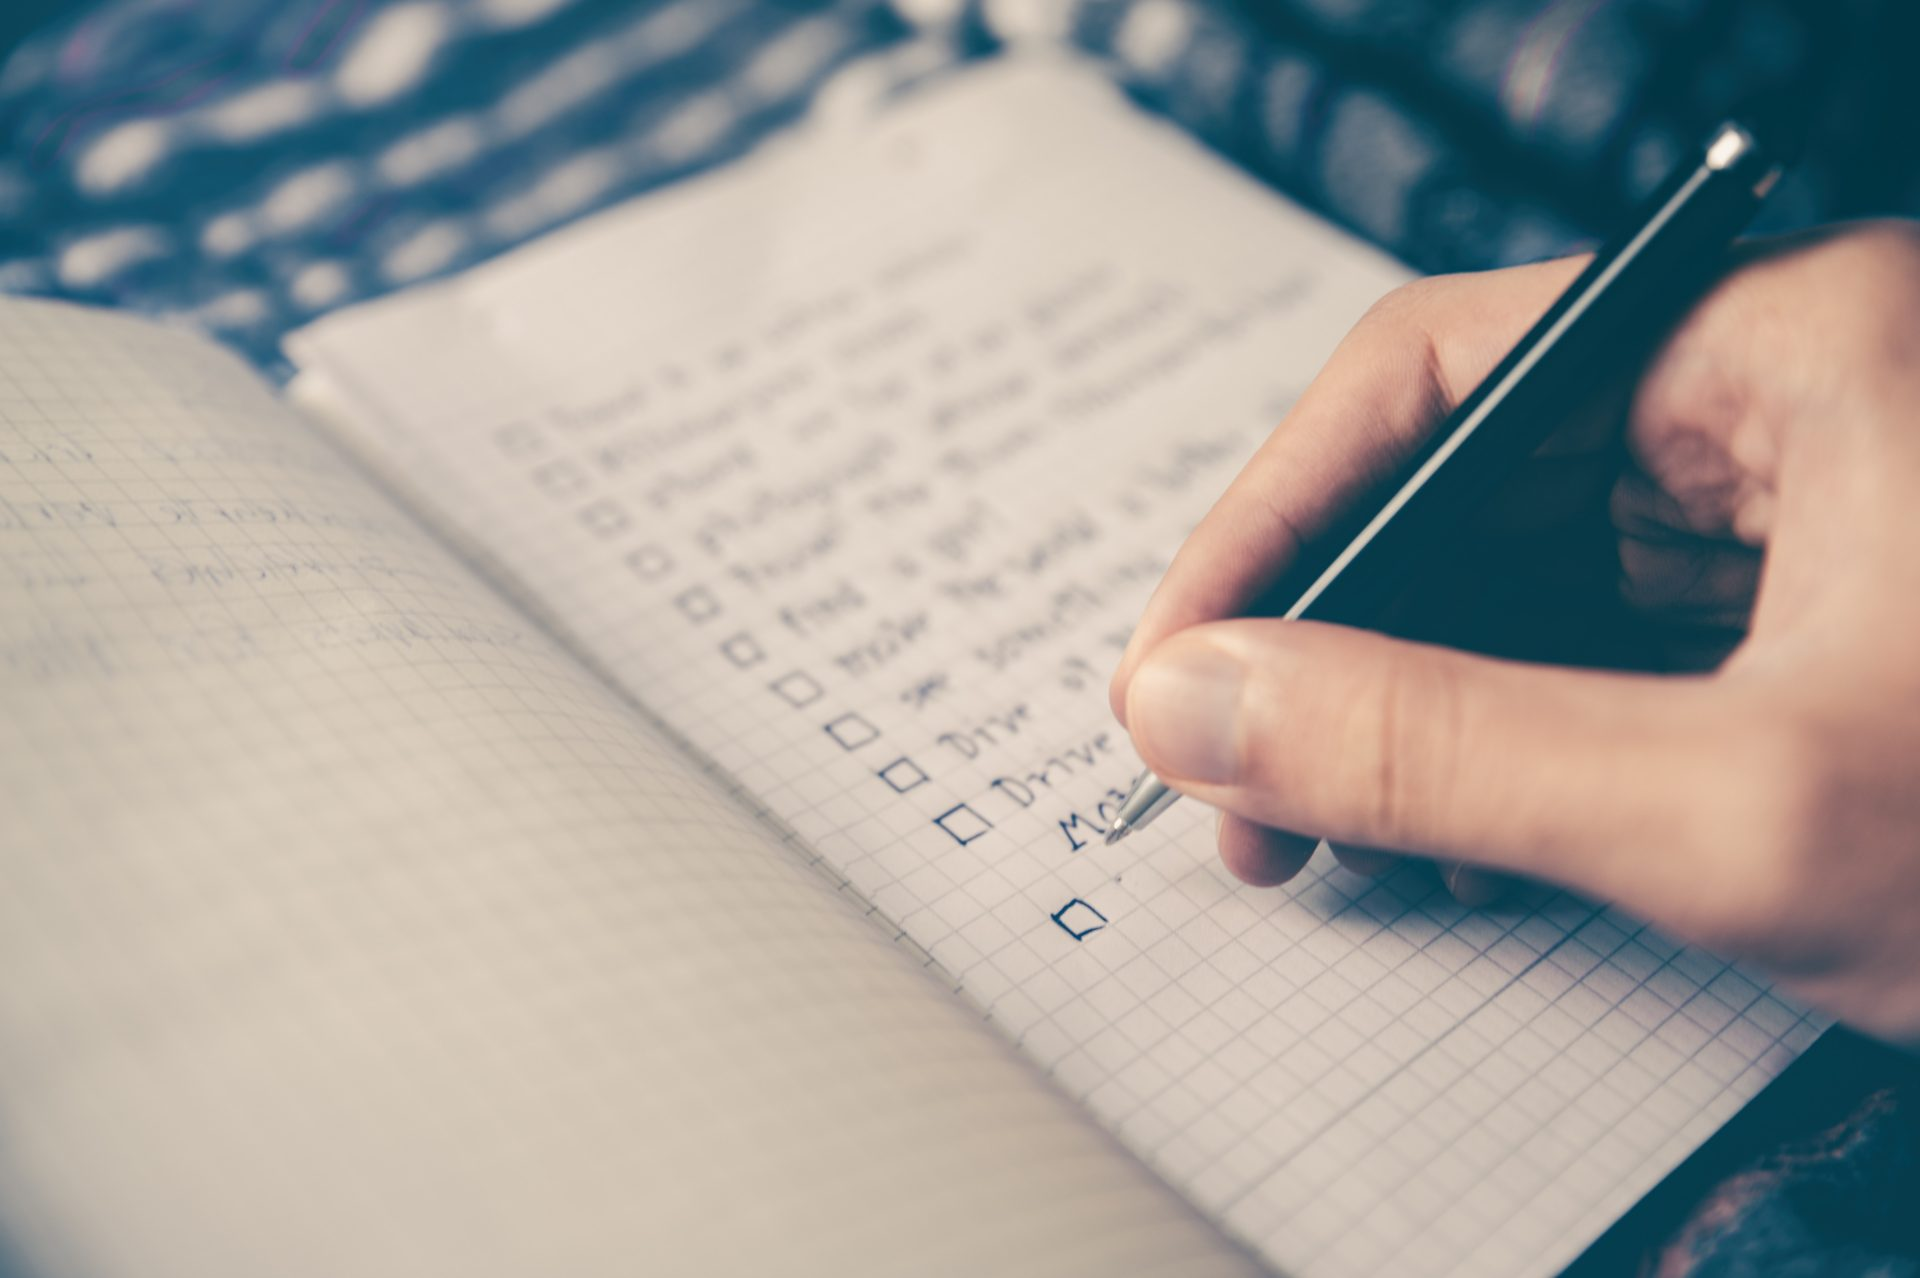 Site Inspection Checklist: 10 Things to Look Out for During Site Visits